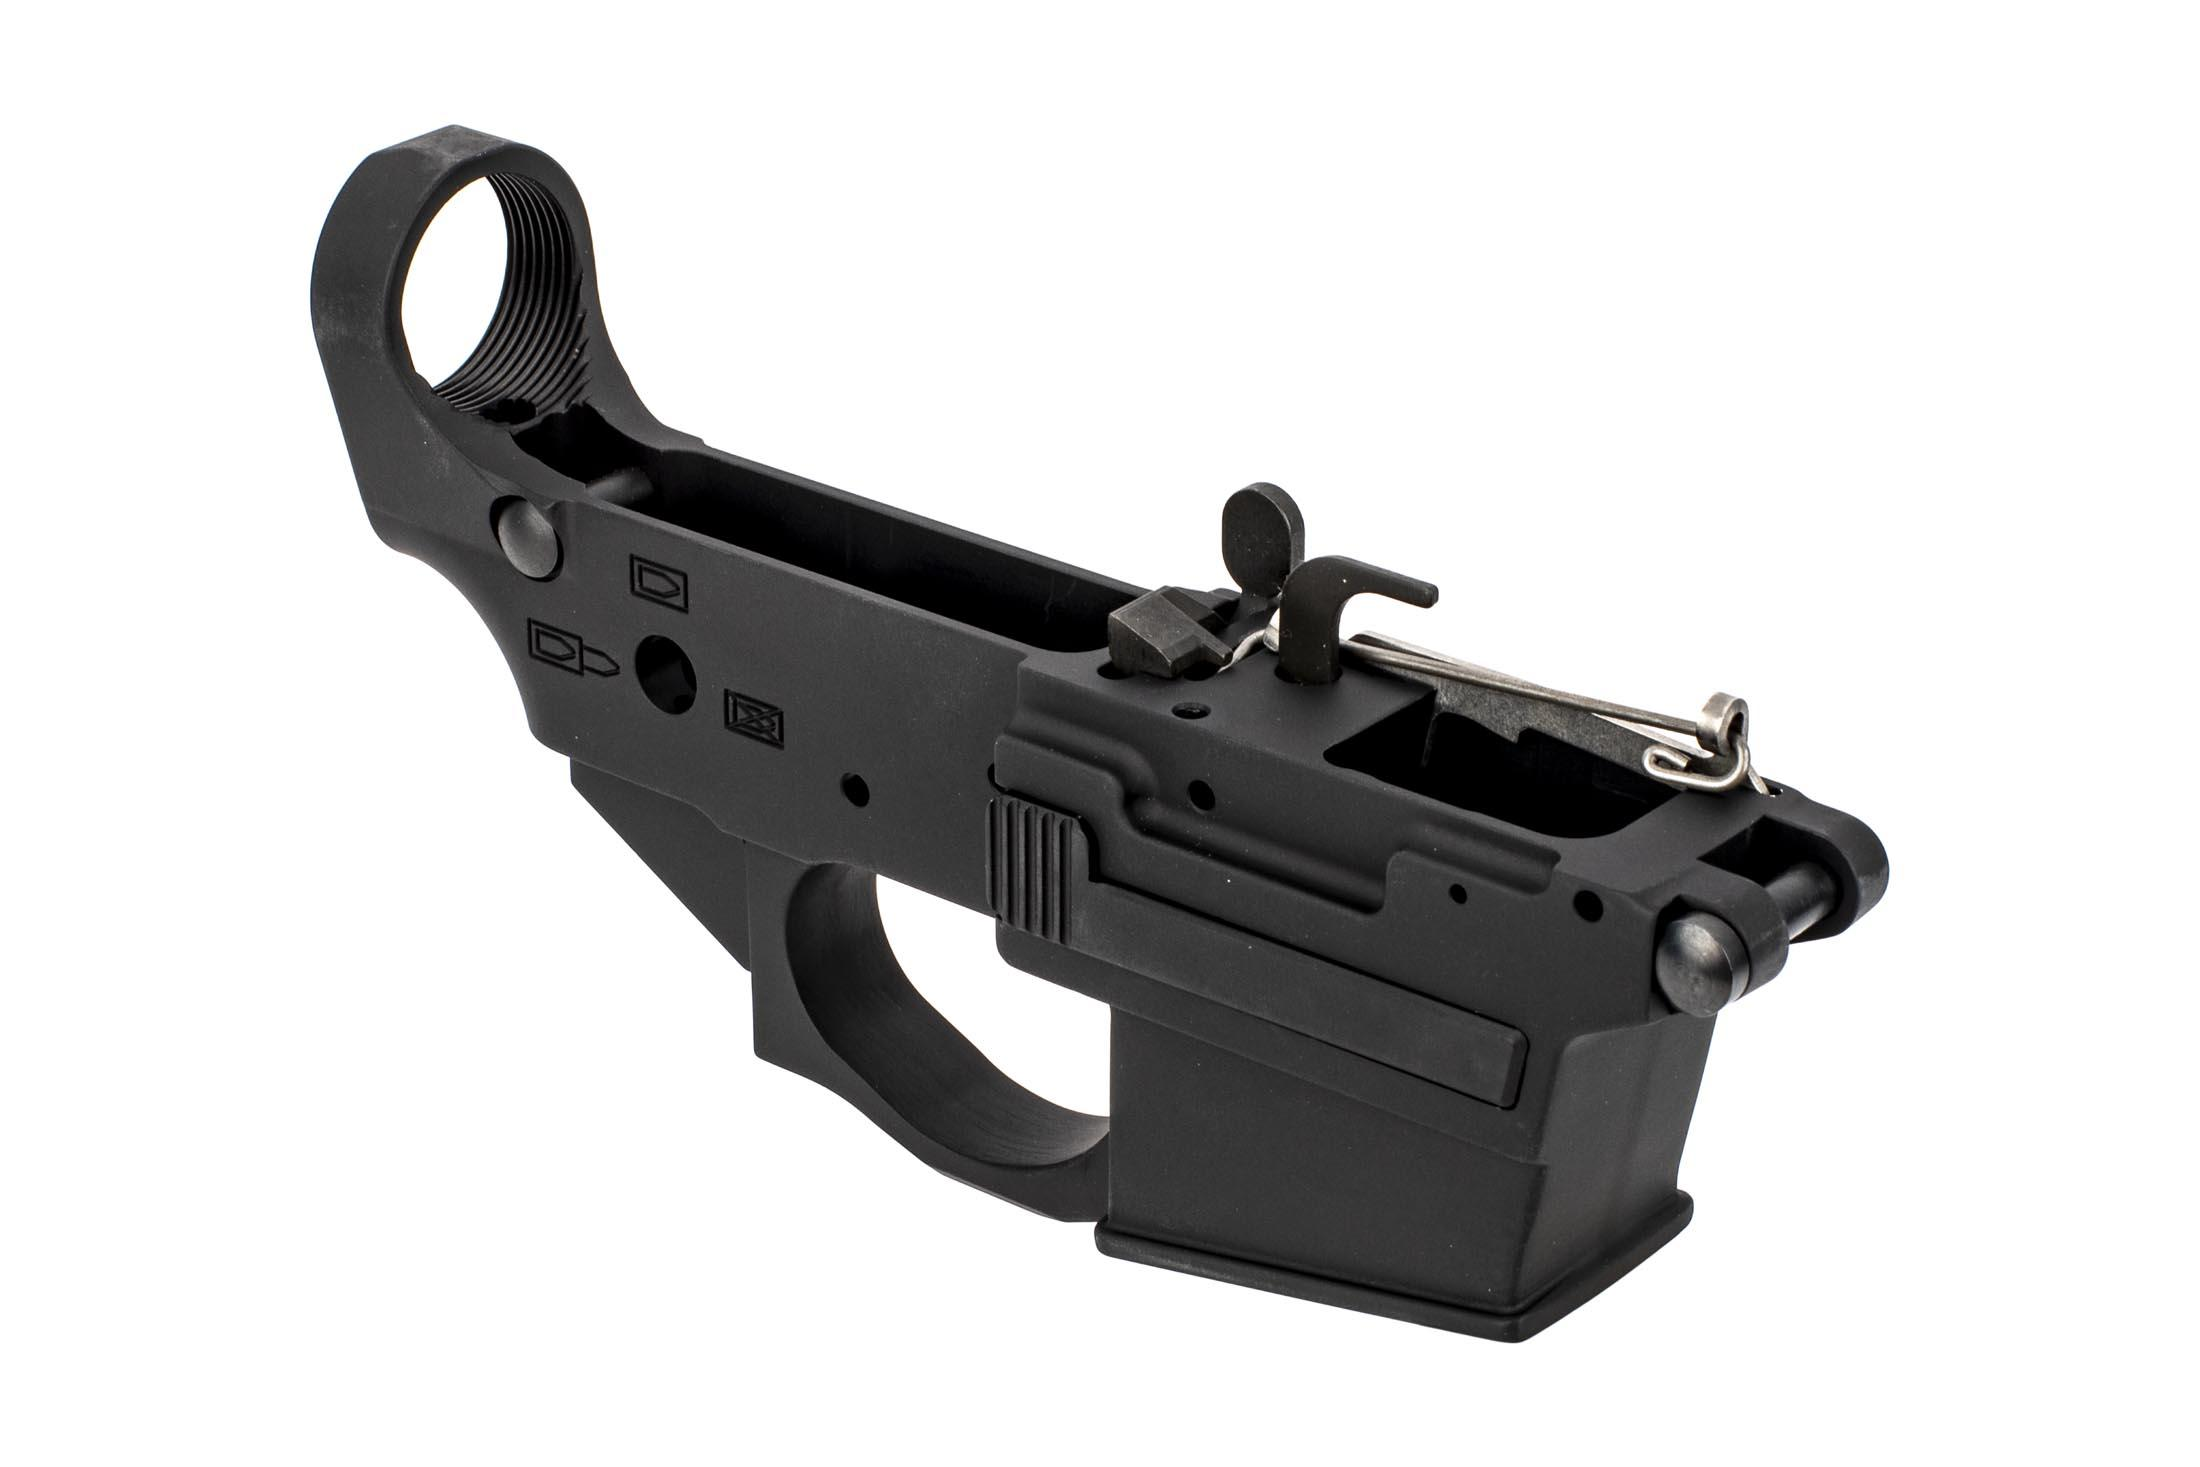 The Spike's Tactical Spider 9mm Lower receiver with enlarged magazine release button